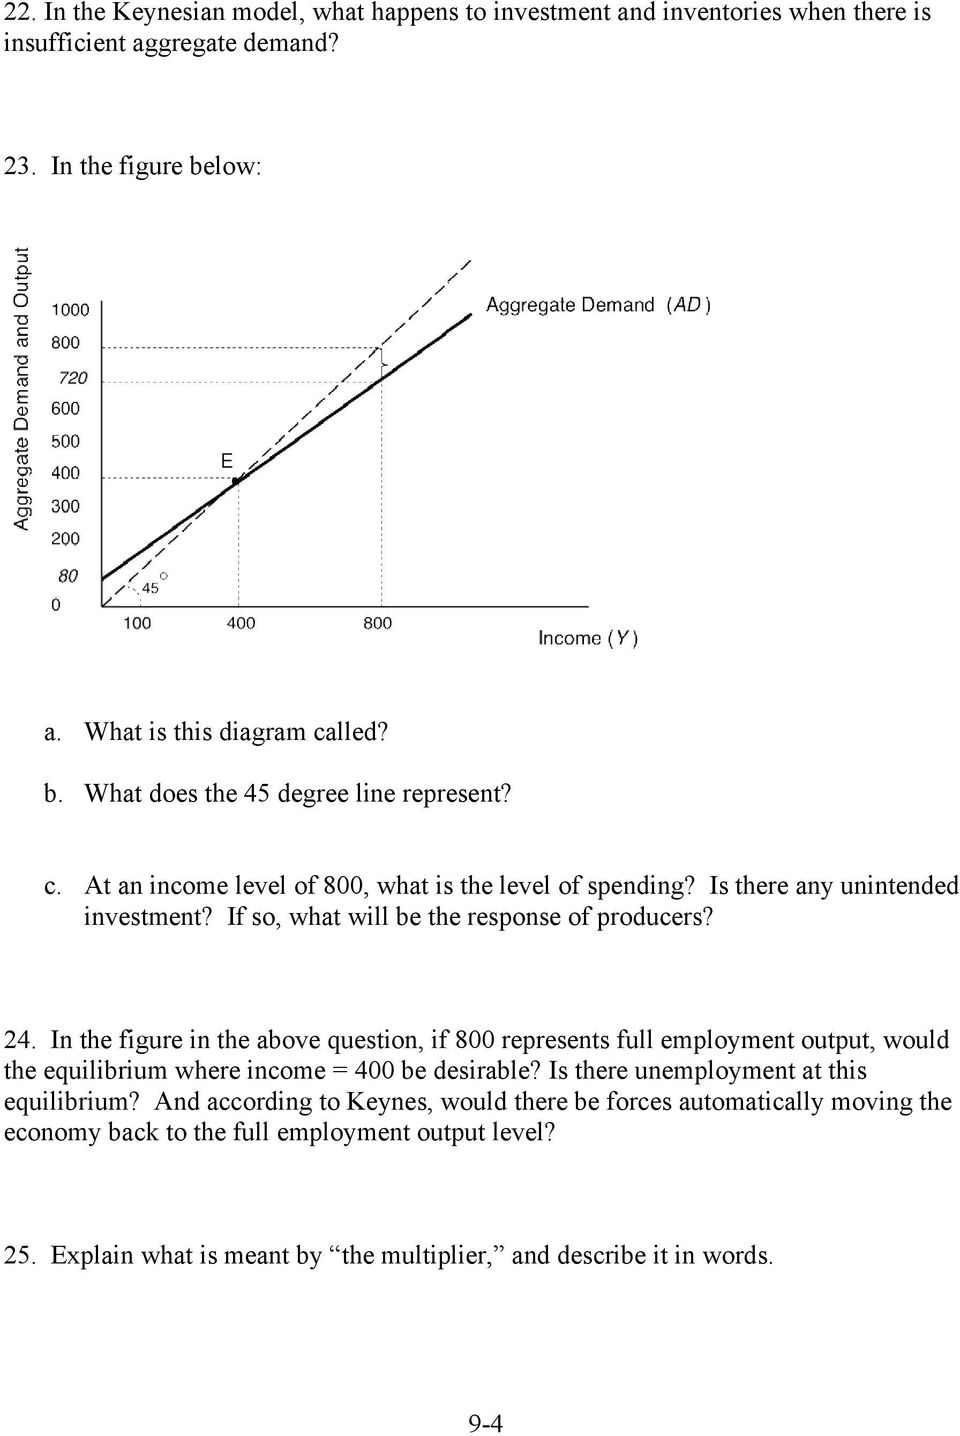 In the figure in the above question, if 800 represents full employment output, would the equilibrium where income = 400 be desirable? Is there unemployment at this equilibrium?